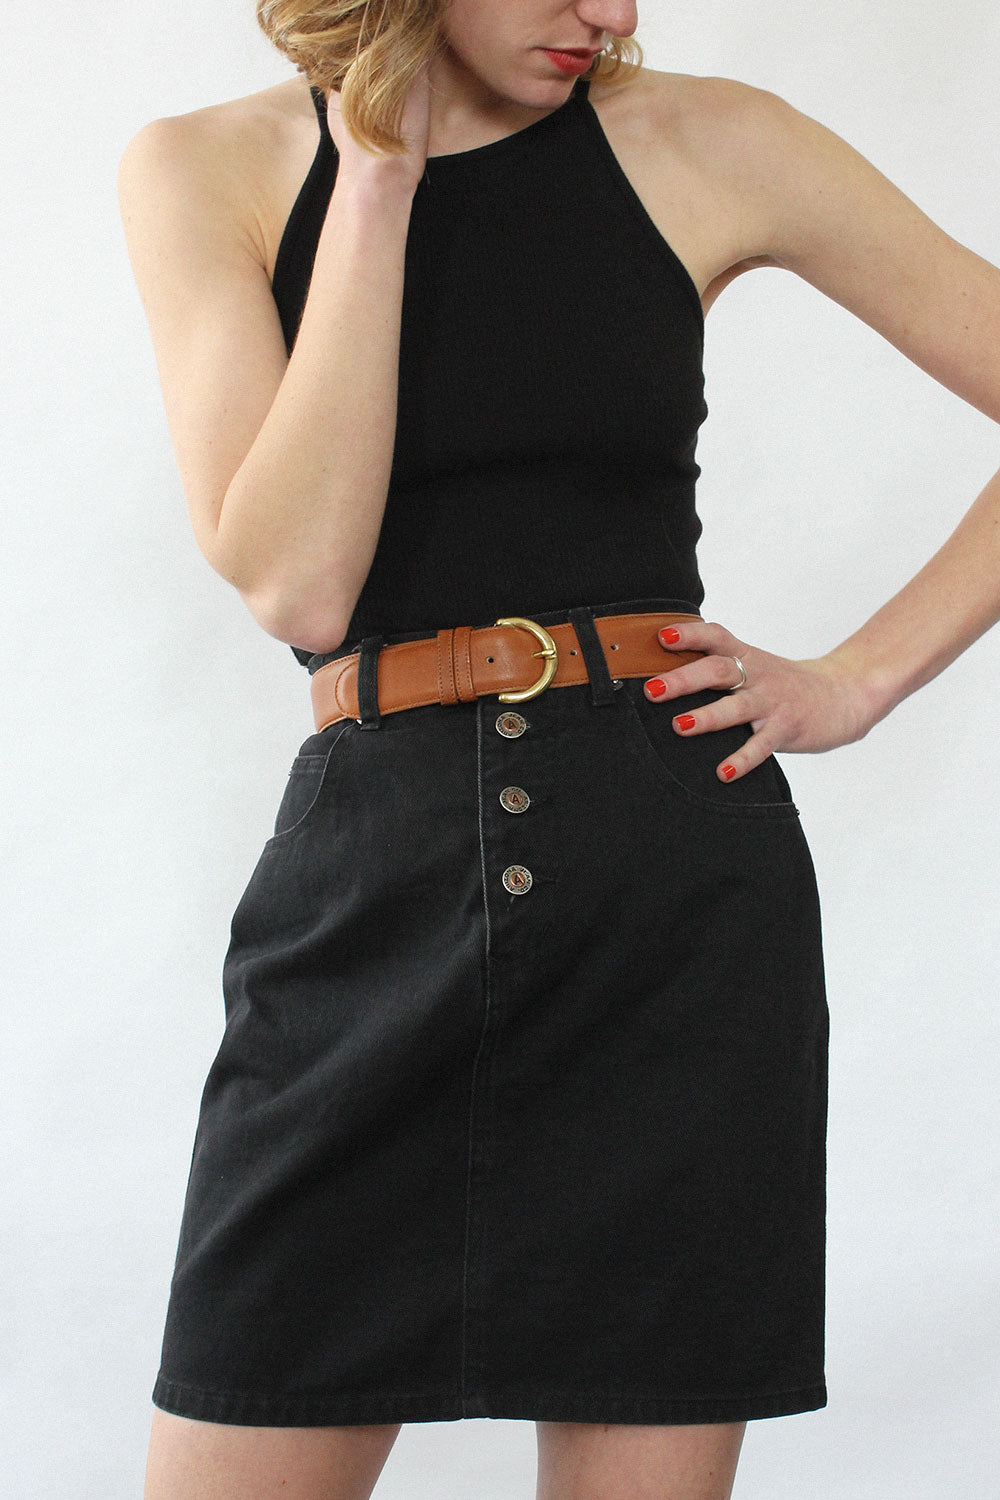 Black Denim 90s Mini Skirt S